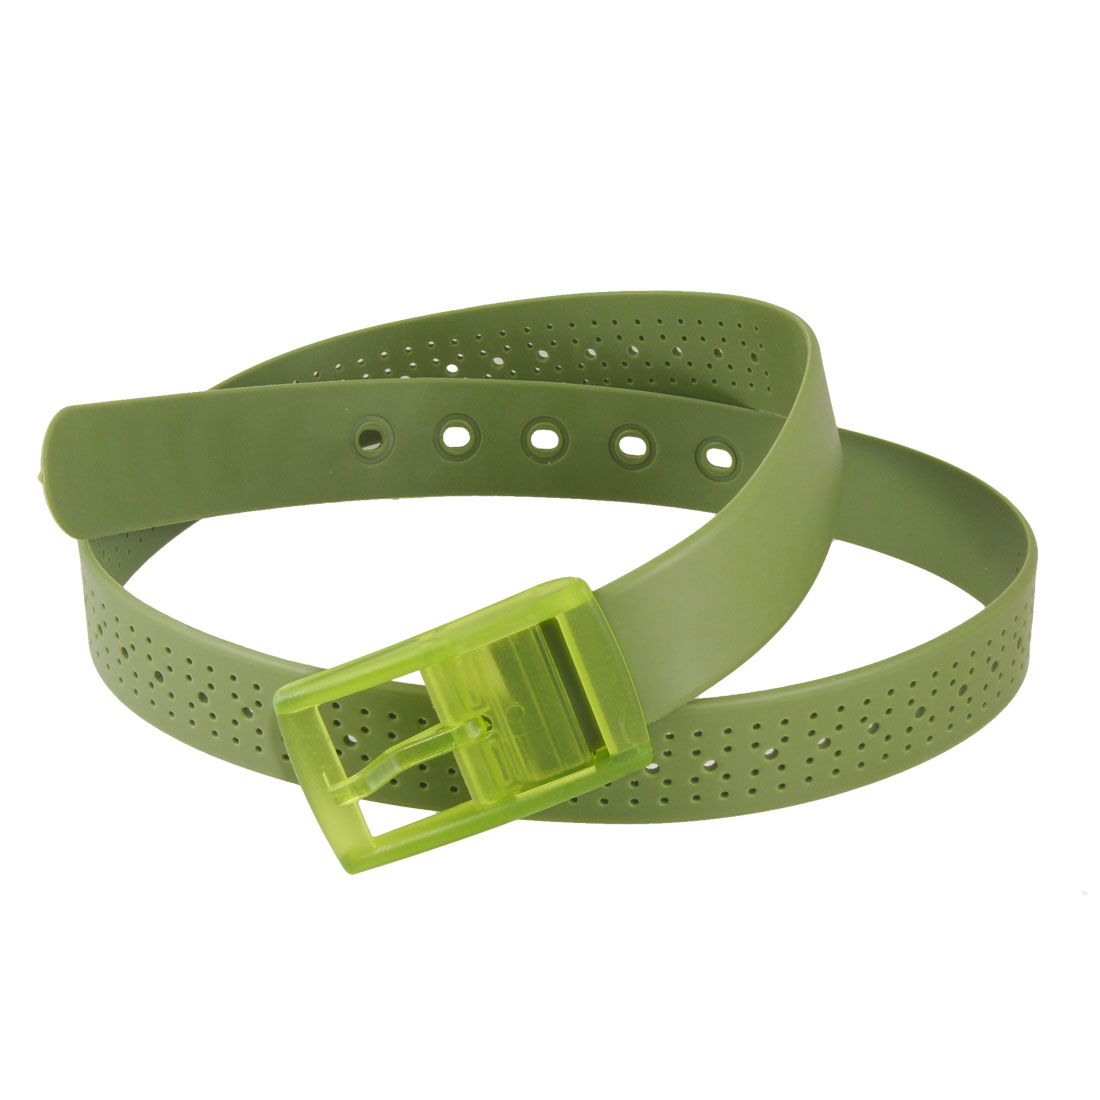 "Lady Single Pin Buckle 1.3"" Wide Plastic Scented Belt Olive Green"